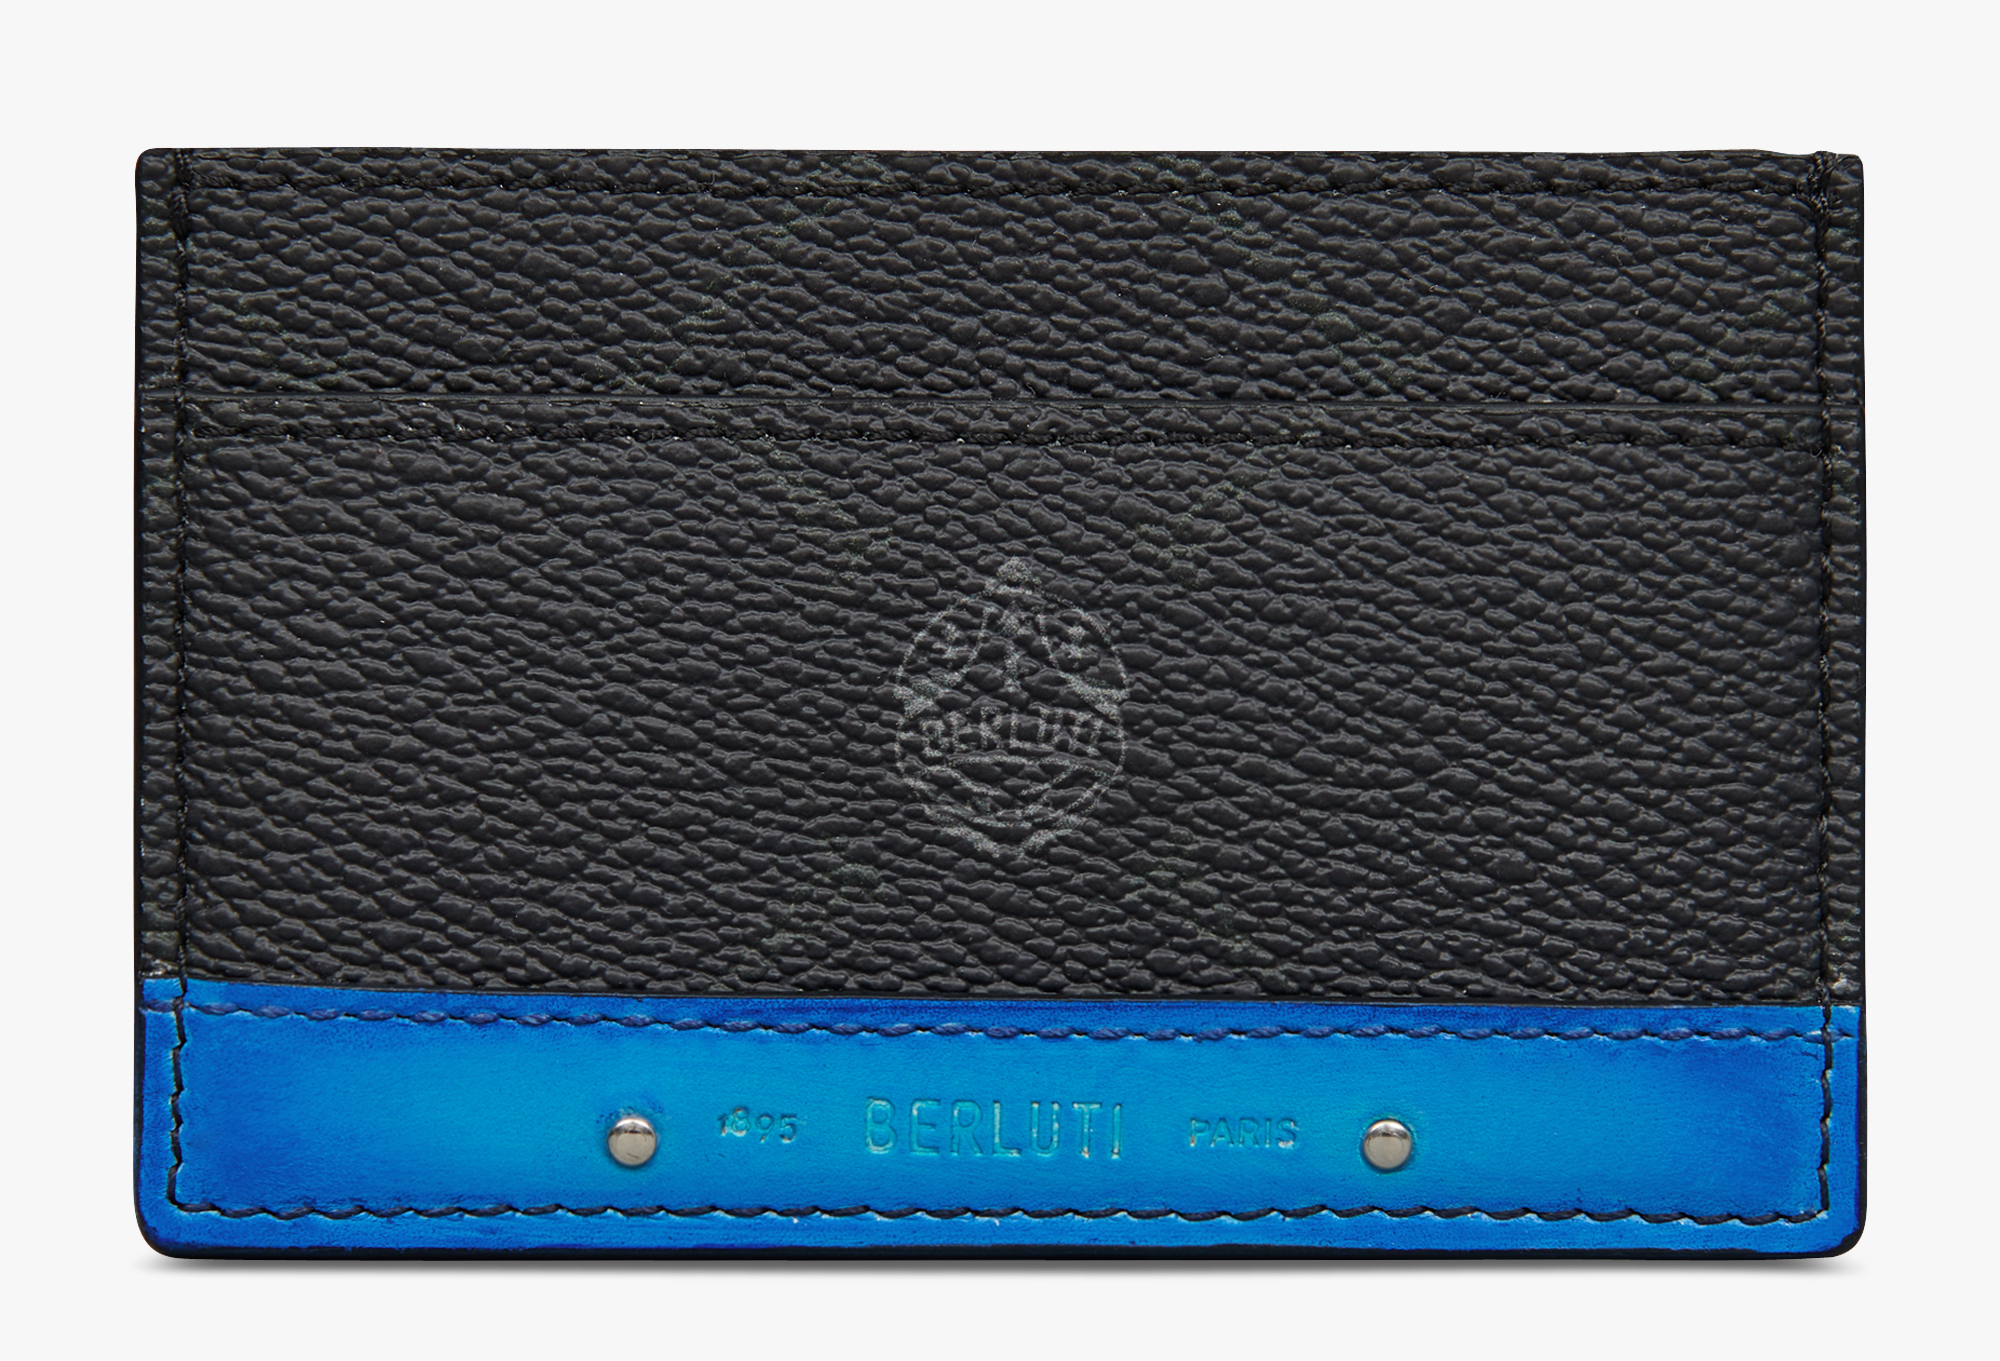 Séjour Canvas And Leather Card Holder, BLACK + AQUA BLUE, hi-res